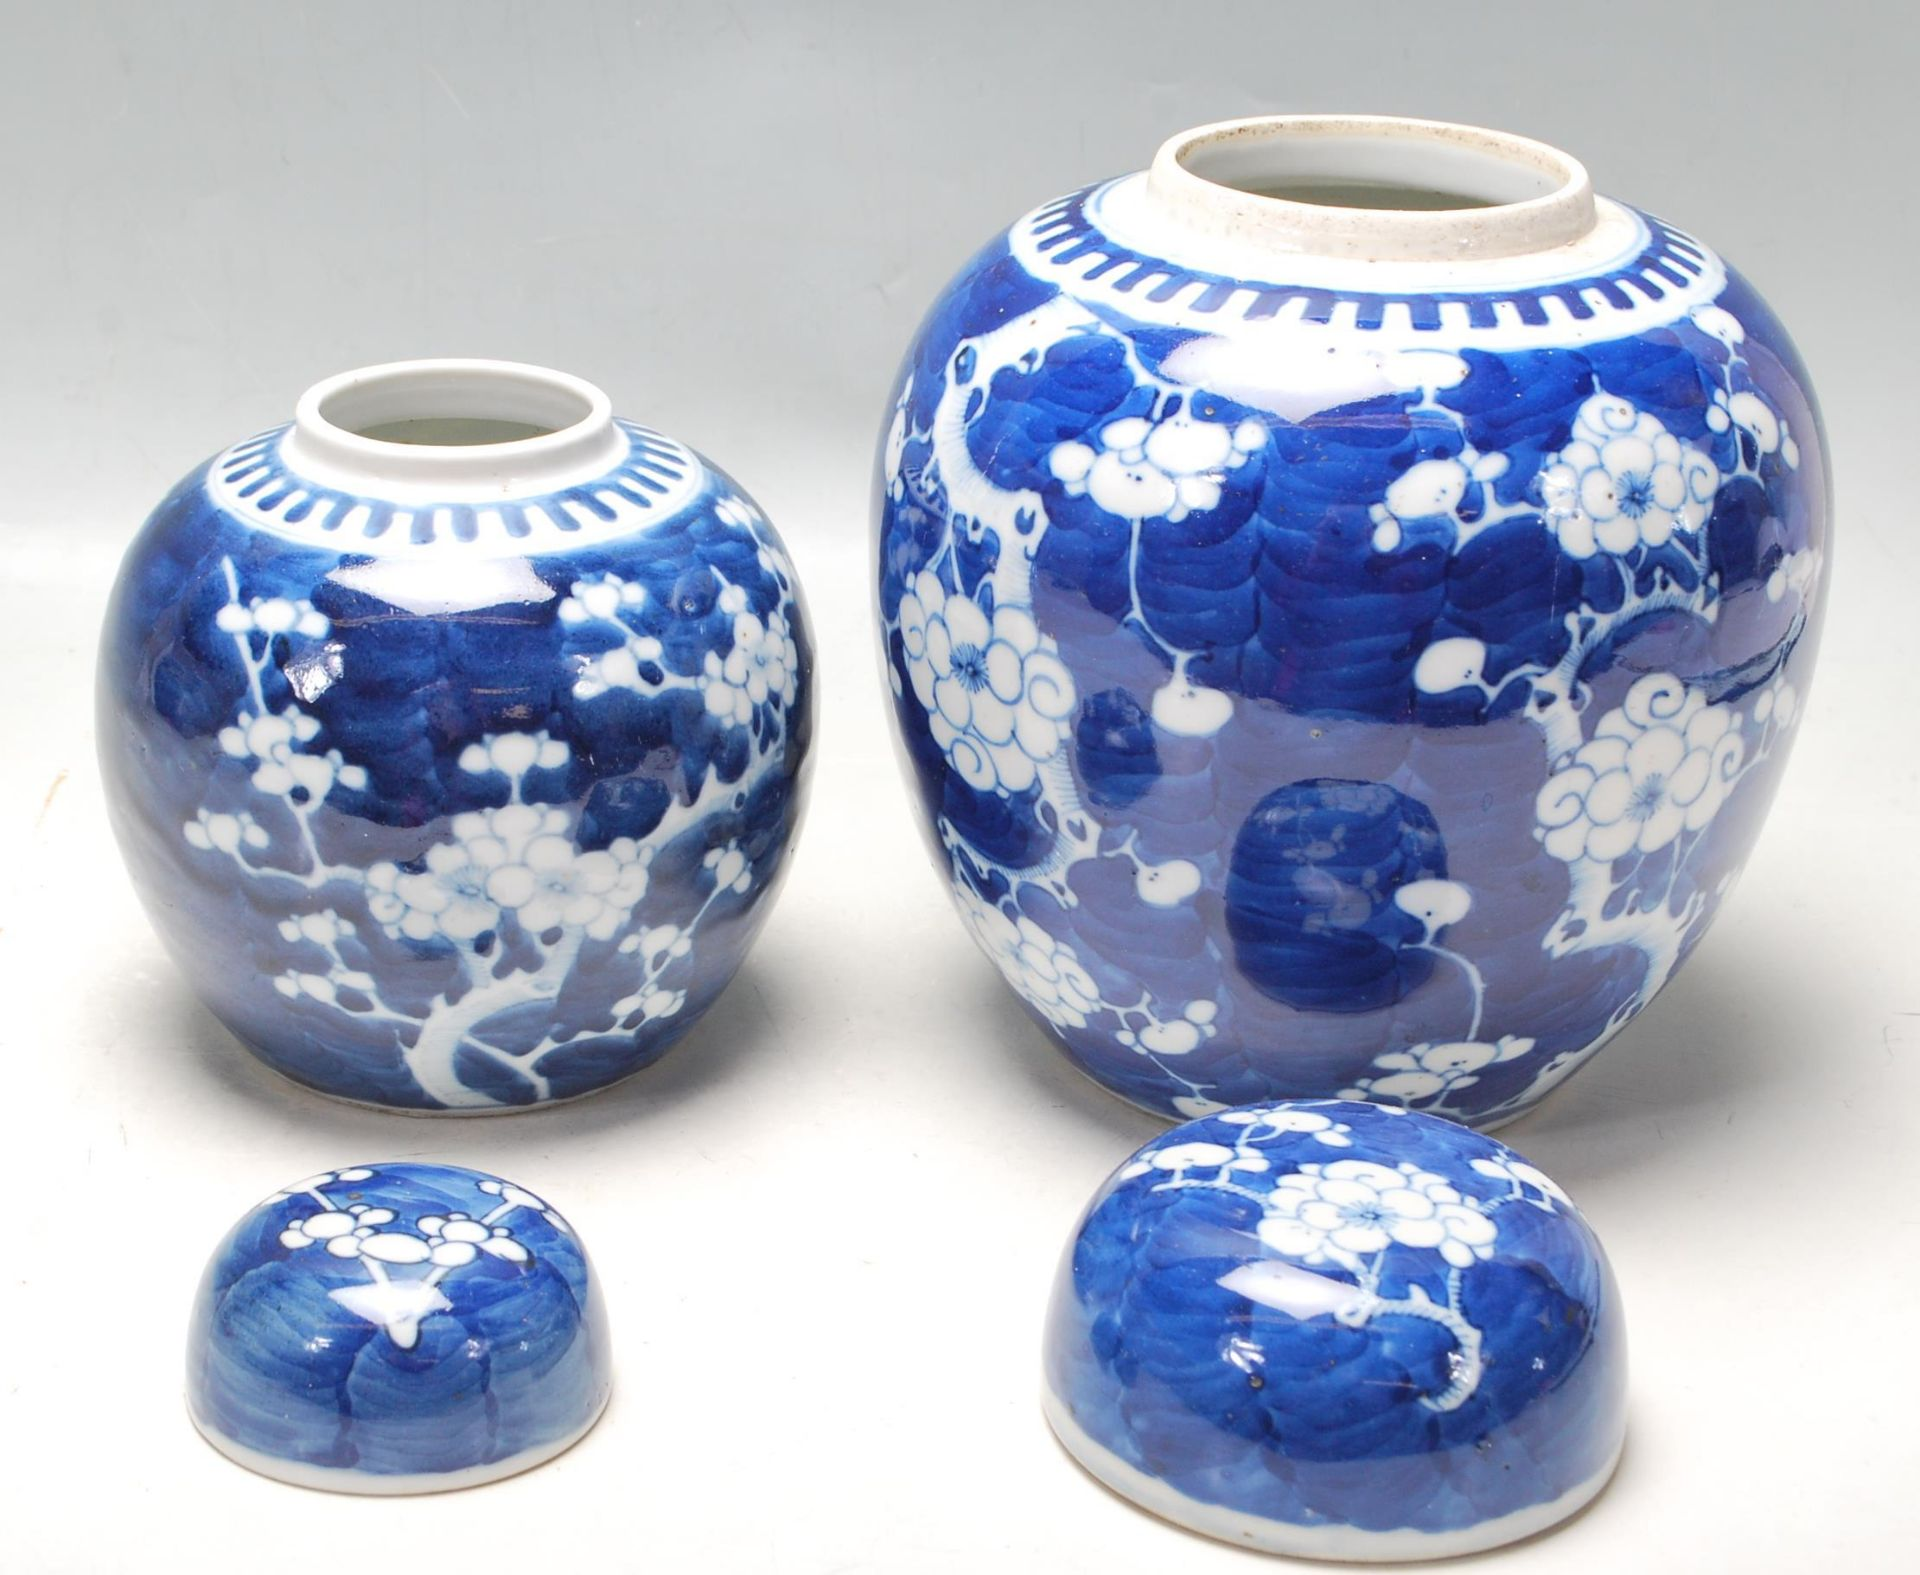 TWO ANTIQUE EARLY 20TH CENTURY CHINESE BLUE AND WHITE GINGER AND JARS - Image 2 of 8